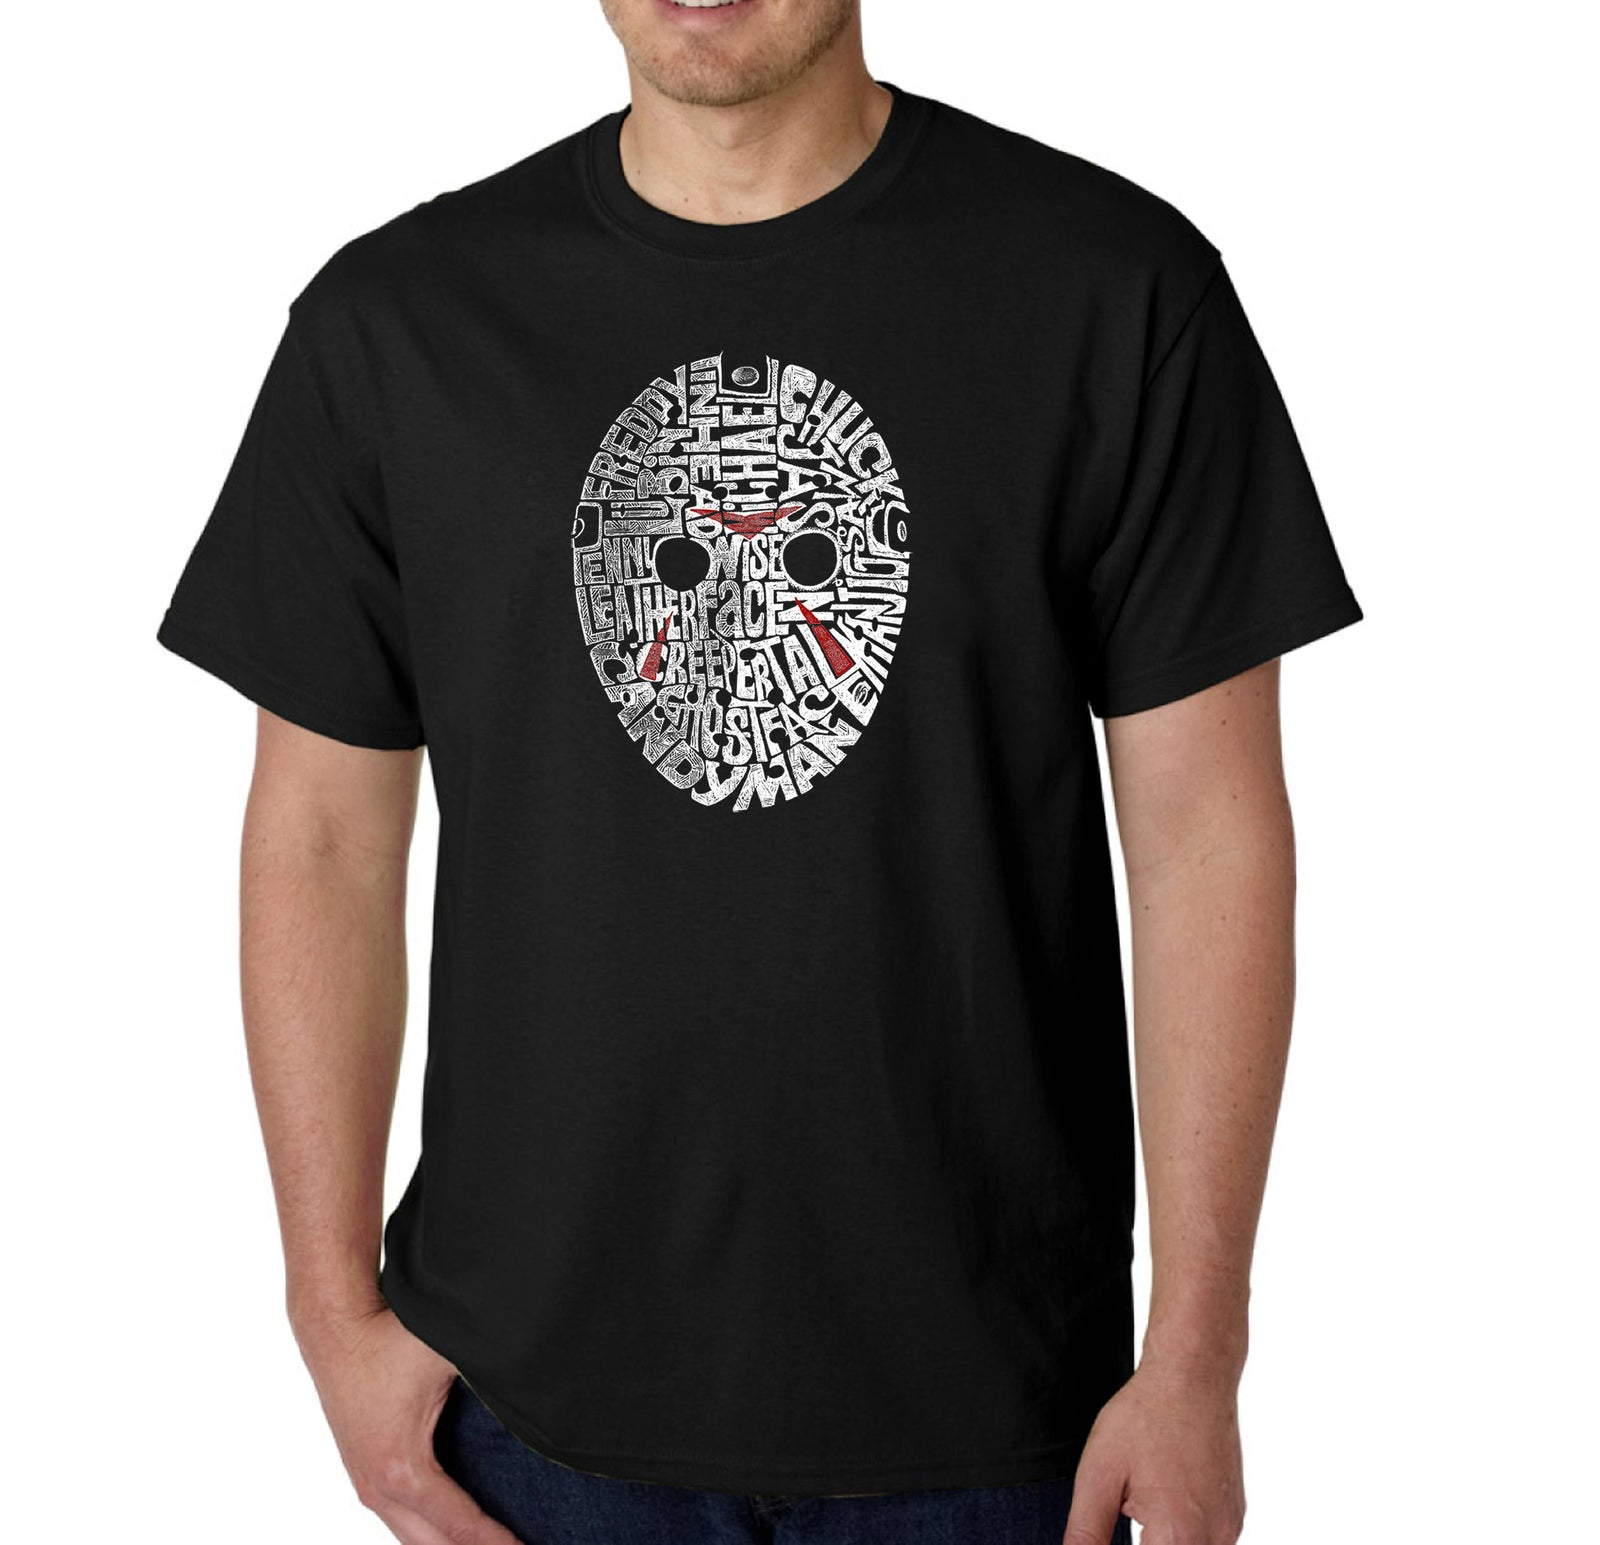 Men's T-shirt - Slasher Movie Villians